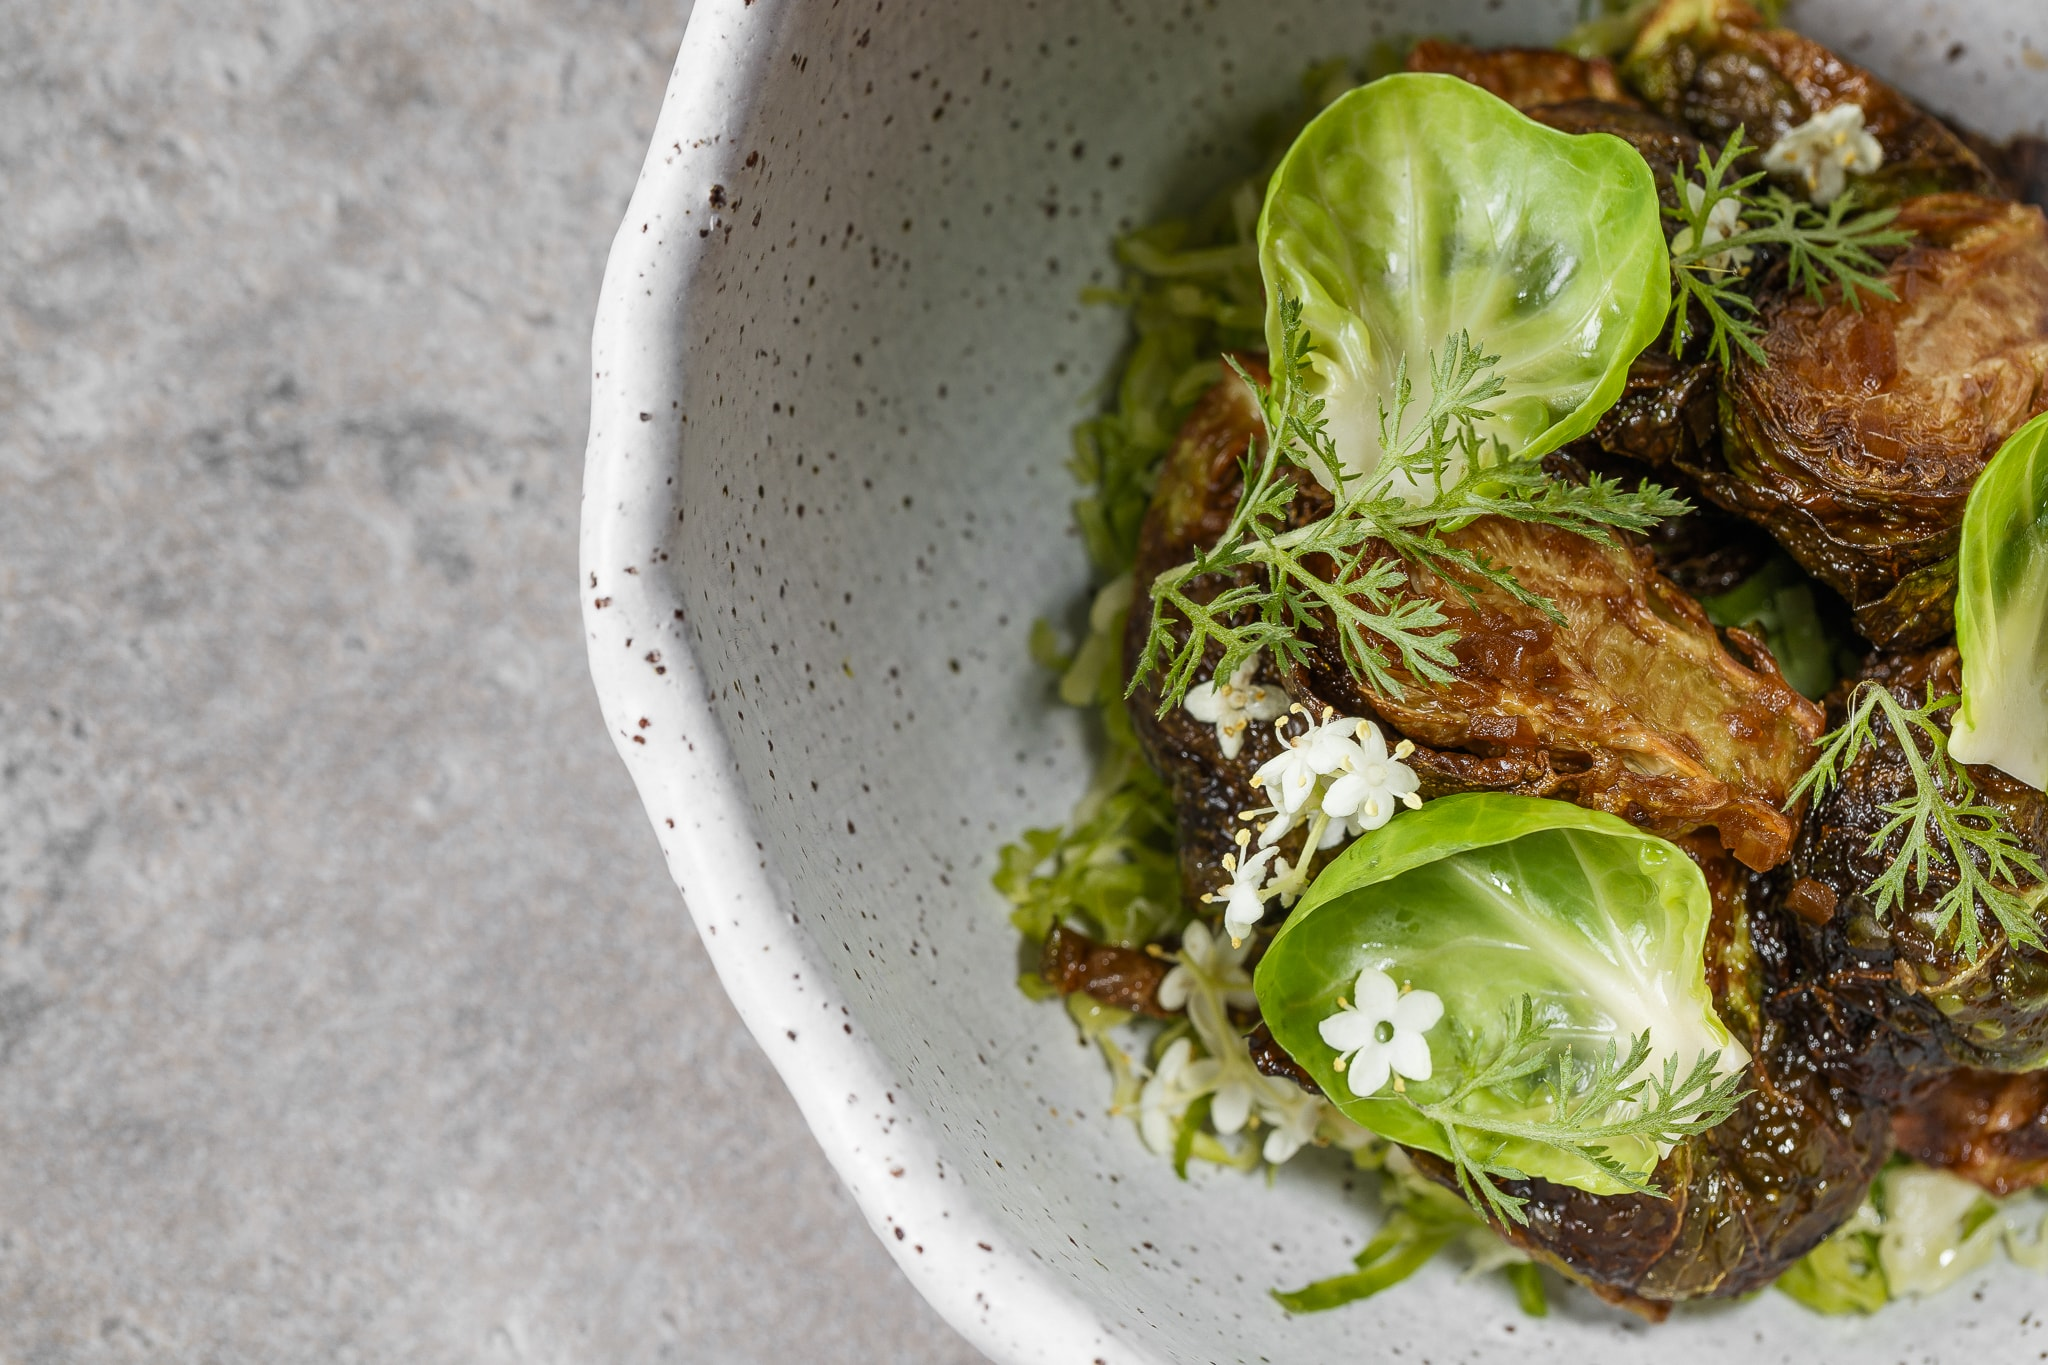 fried brussel sprout • shallot • soy • 2009